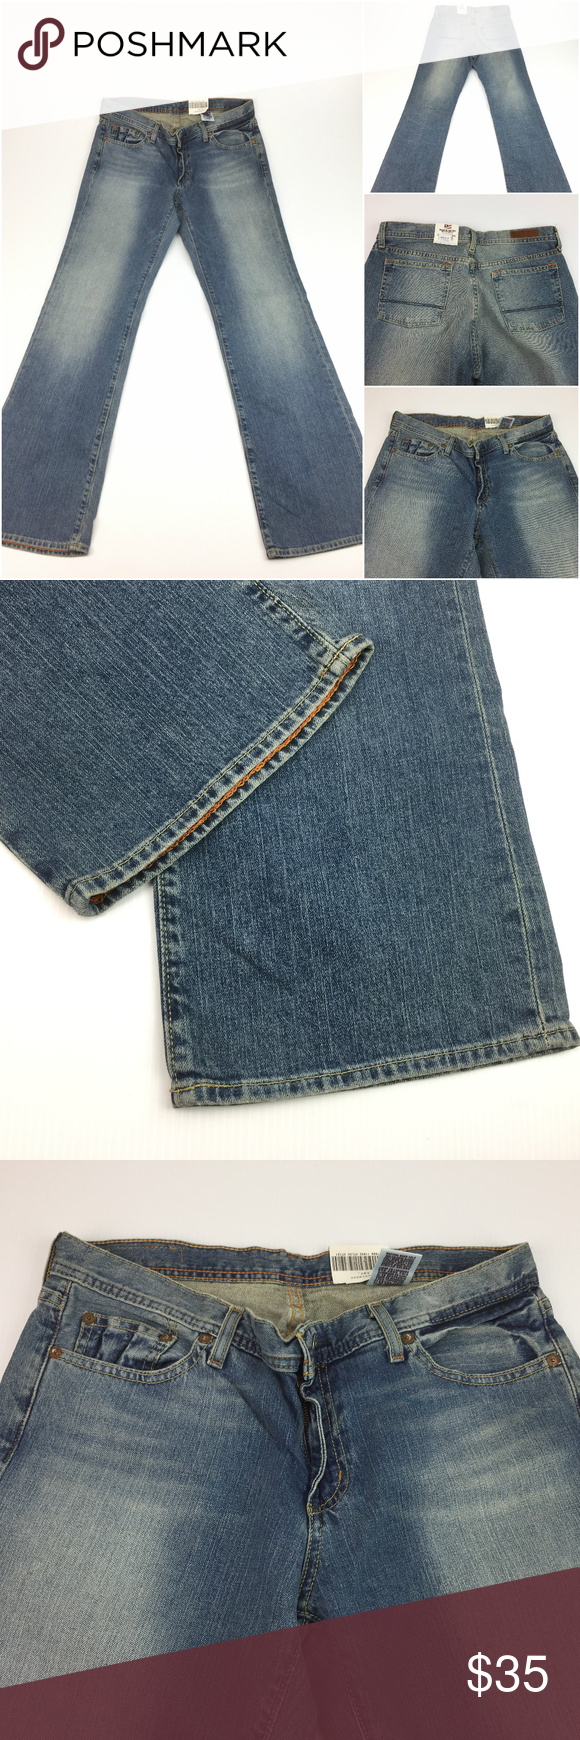 642f8675b Polo Jeans Stretch Kelly womens 10 regular S4-4-3 Description  Polo Jeans